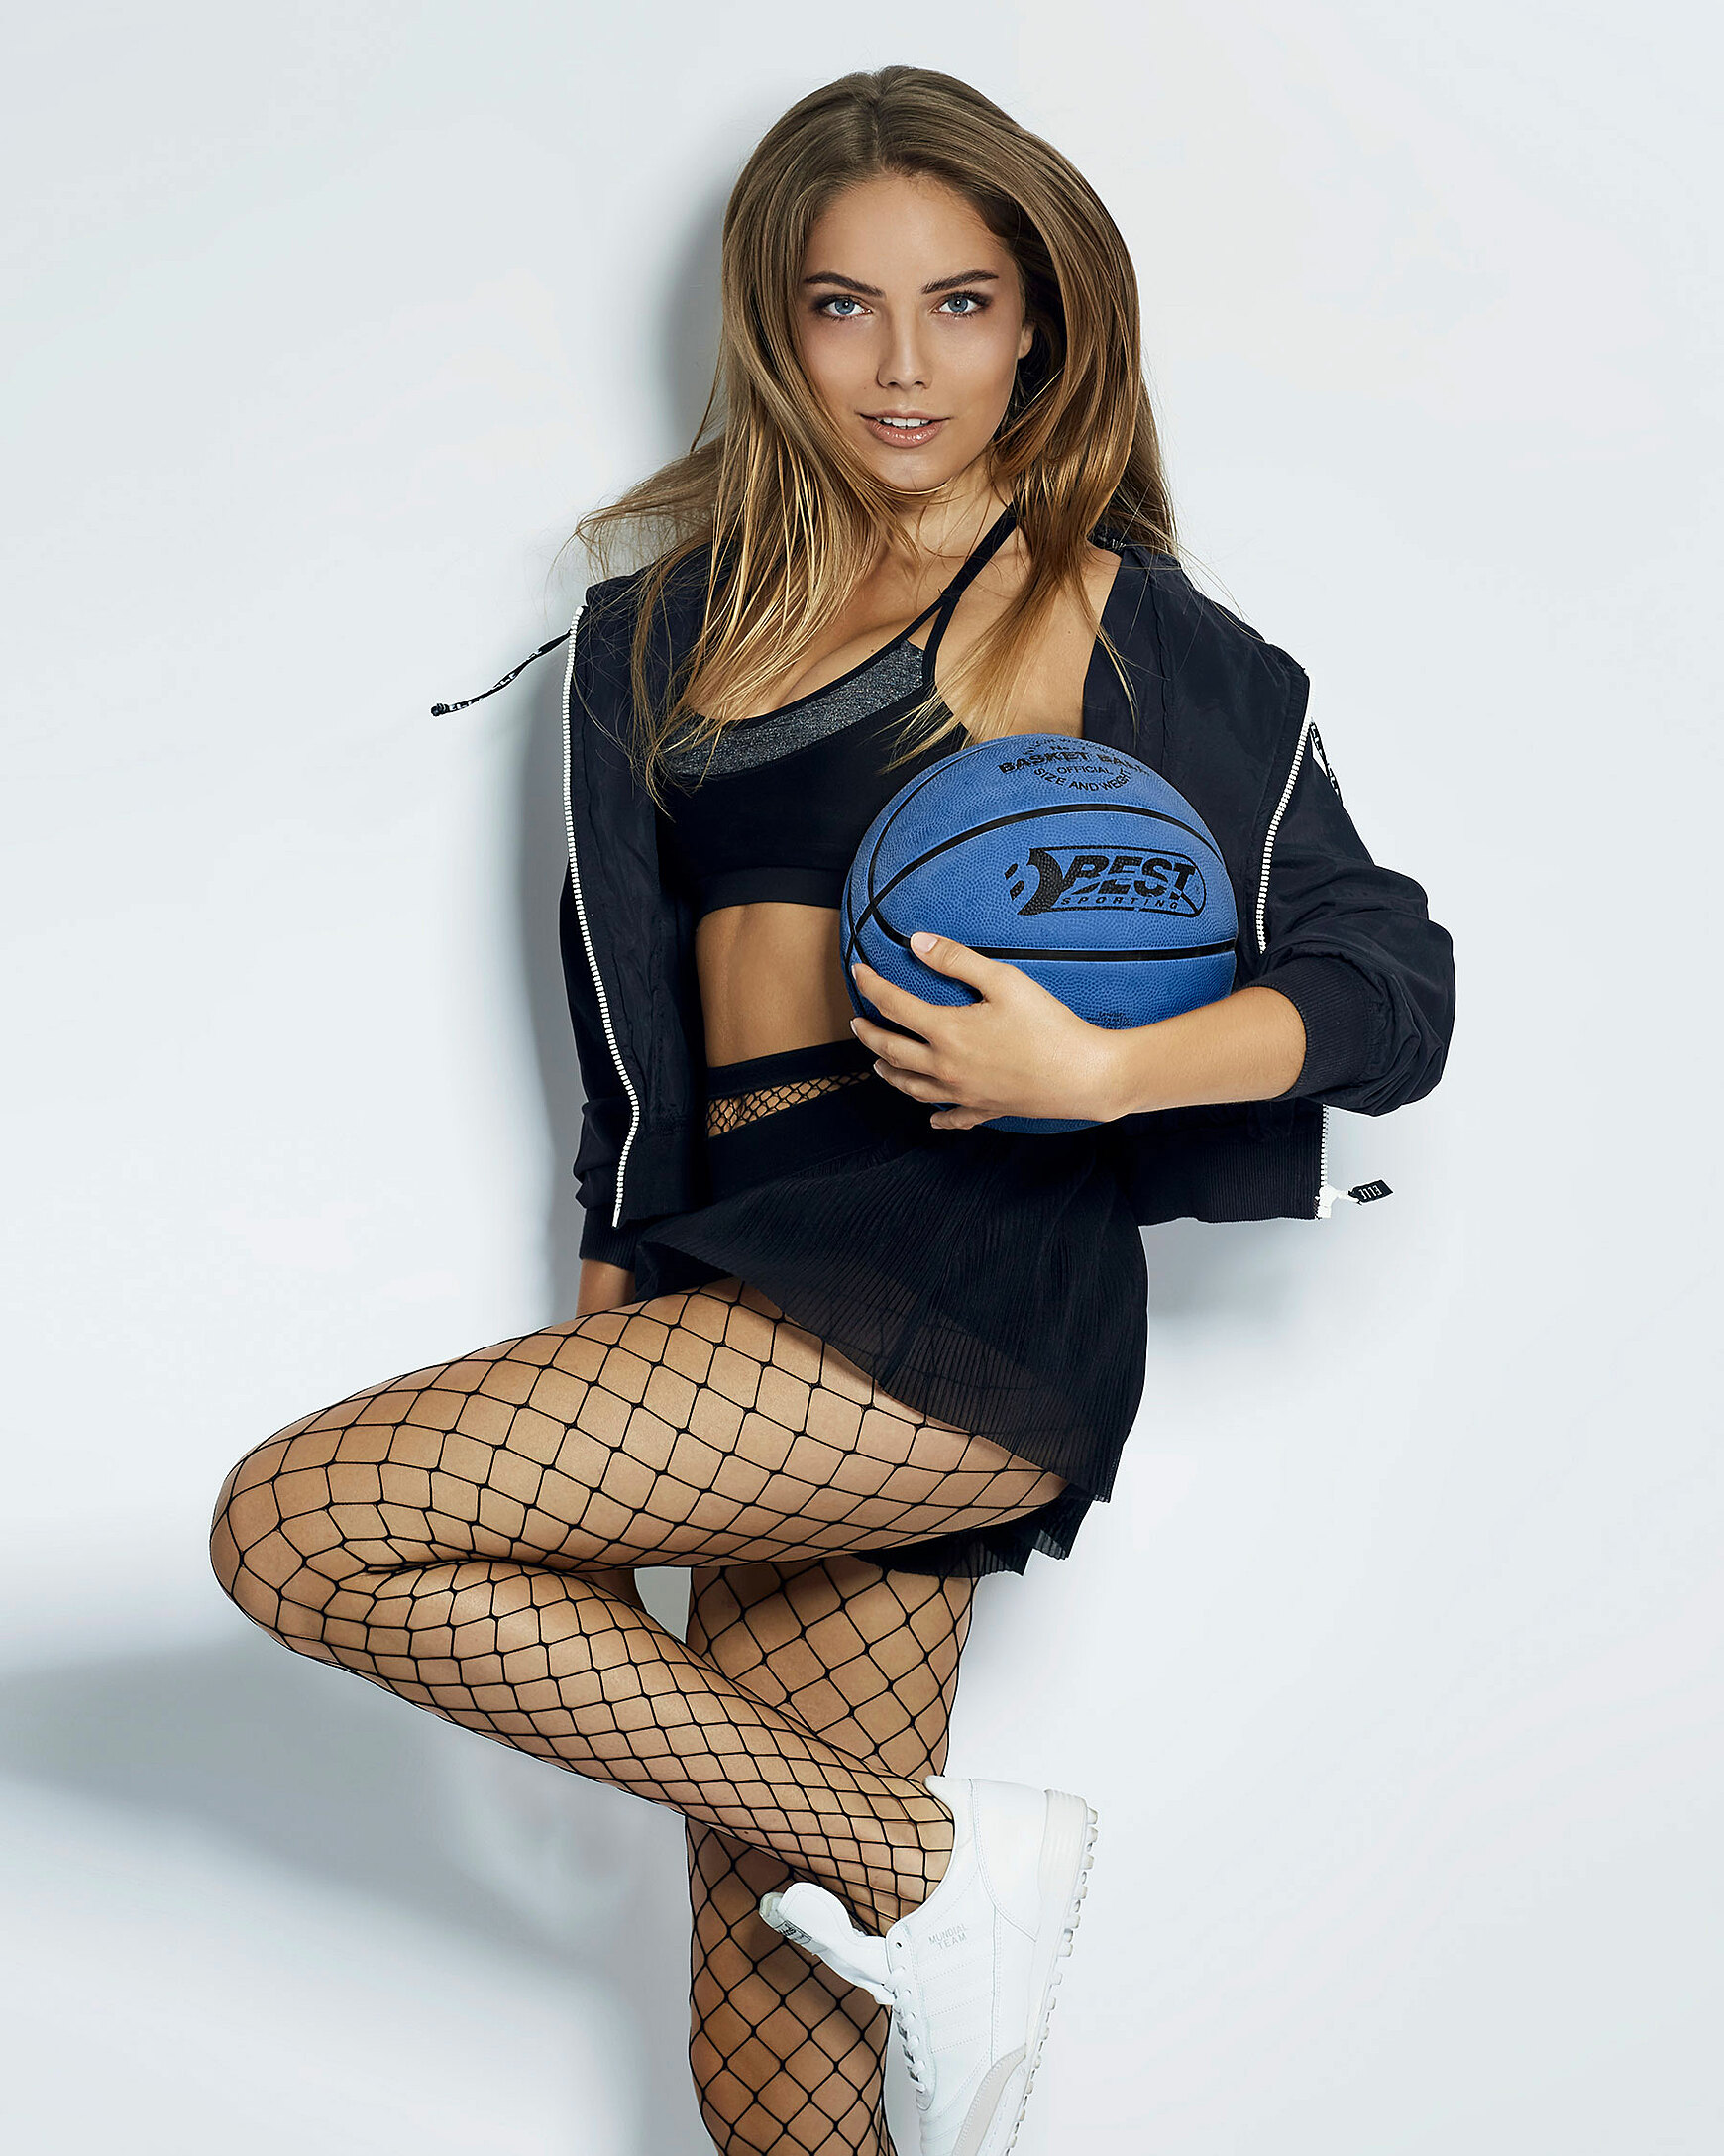 A young model in a sporty outfit with a blue basketball jumped in front of a white wall.